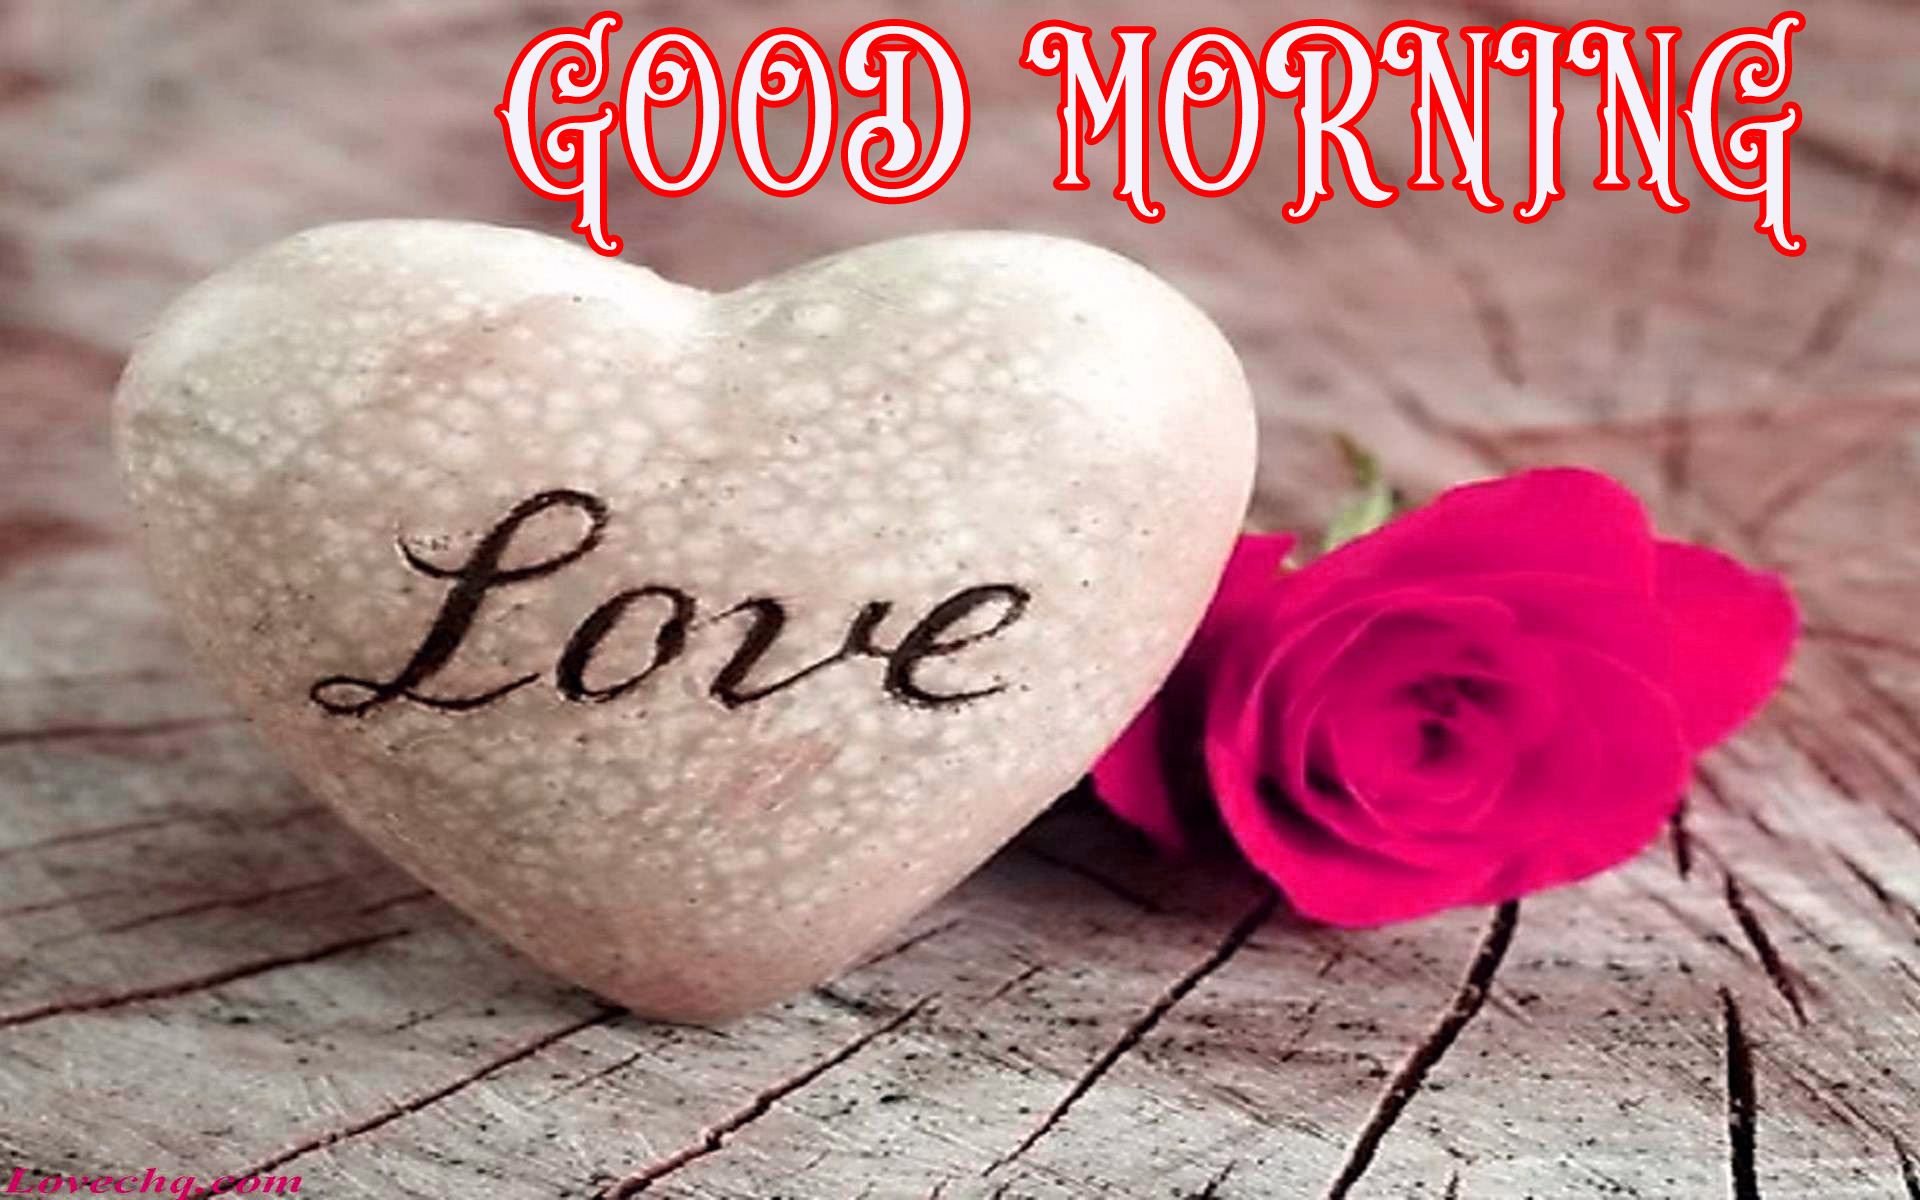 New Lover Good Morning Images Wallpaper Pictures Free Download